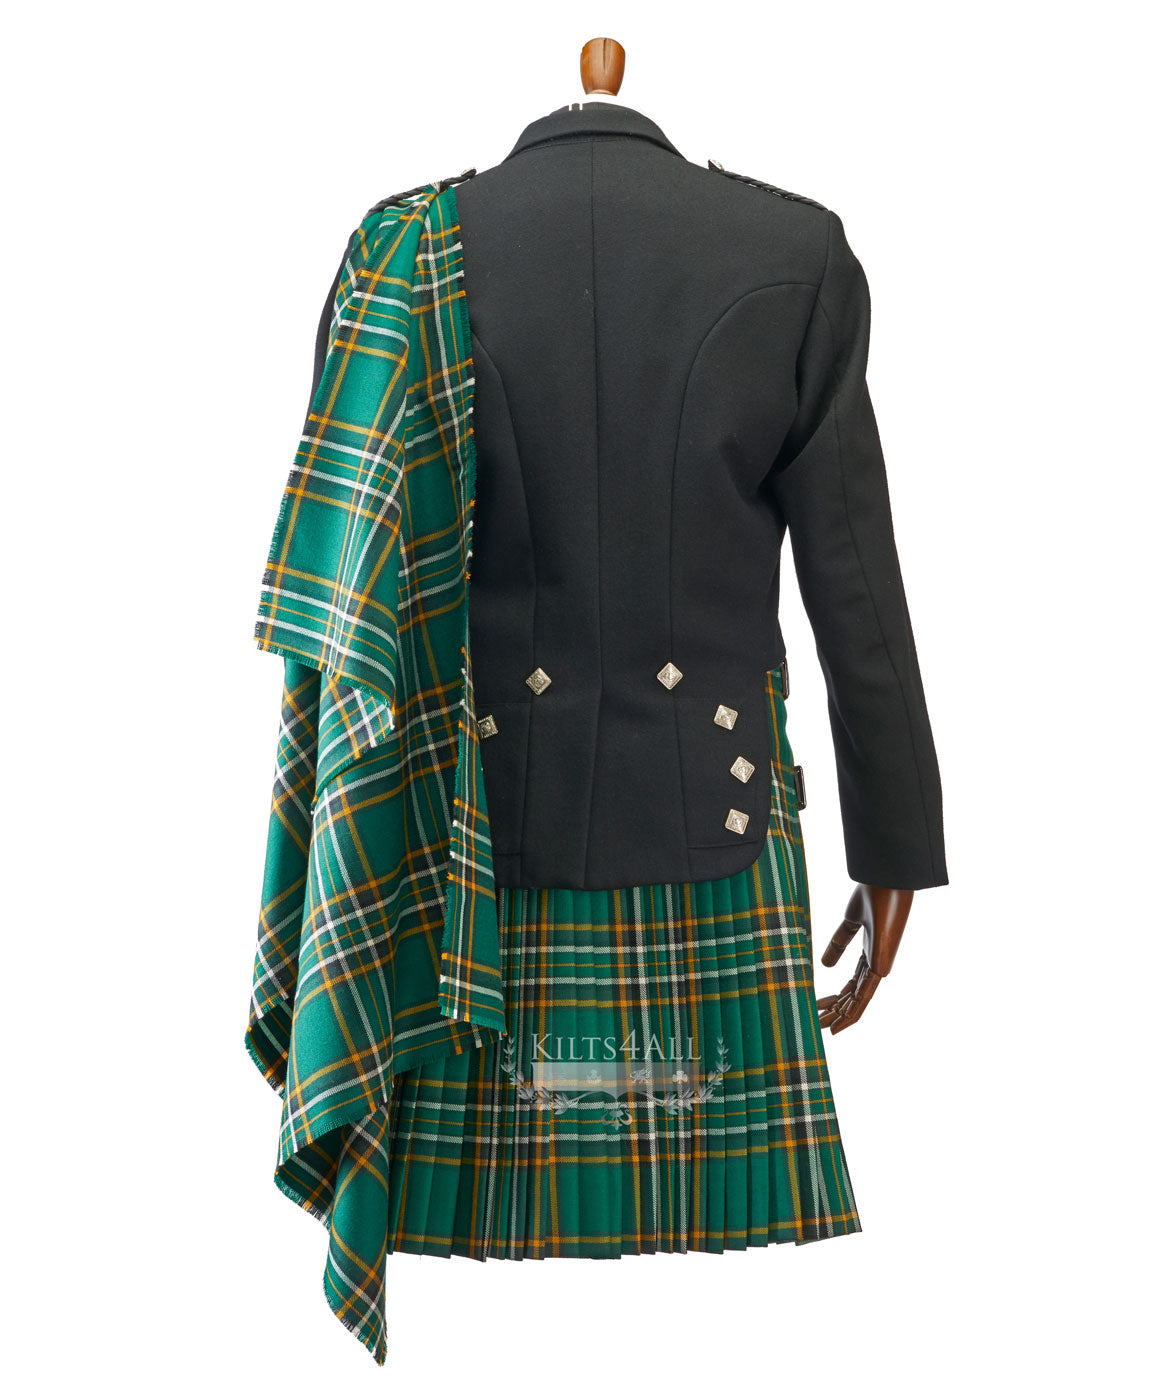 Mens Irish Tartan Kilt Outfit to Hire - Lightweight Charcoal Tweed Argyll Jacket & Waistcoat